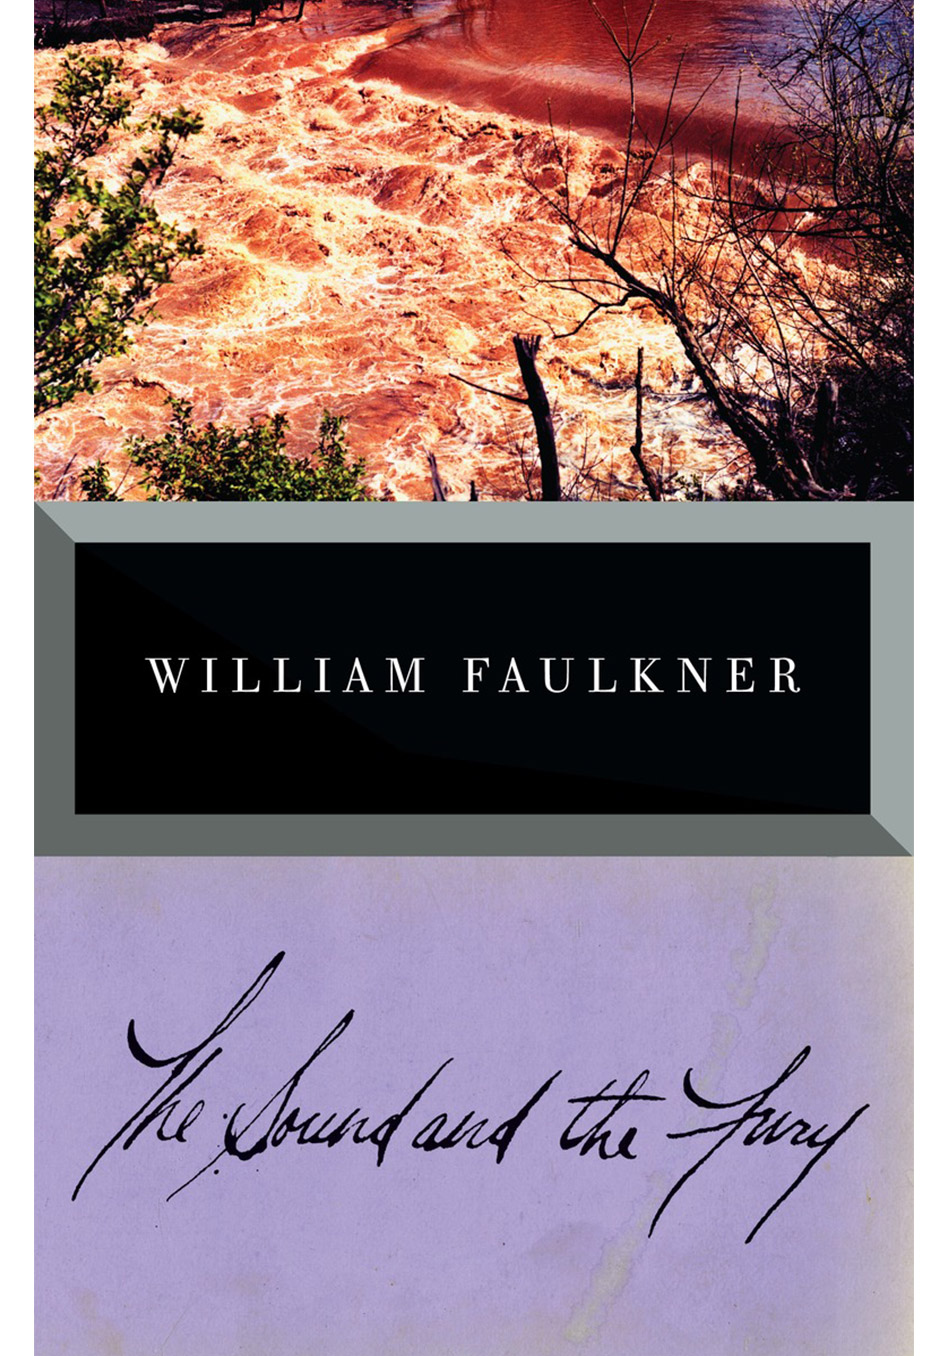 """a familys pride in the sound and the fury by william faulkner The sound and the fury, the first major novel by william faulkner, published in 1929 life """"is a tale told by an idiot, full of sound and fury, signifying nothing."""